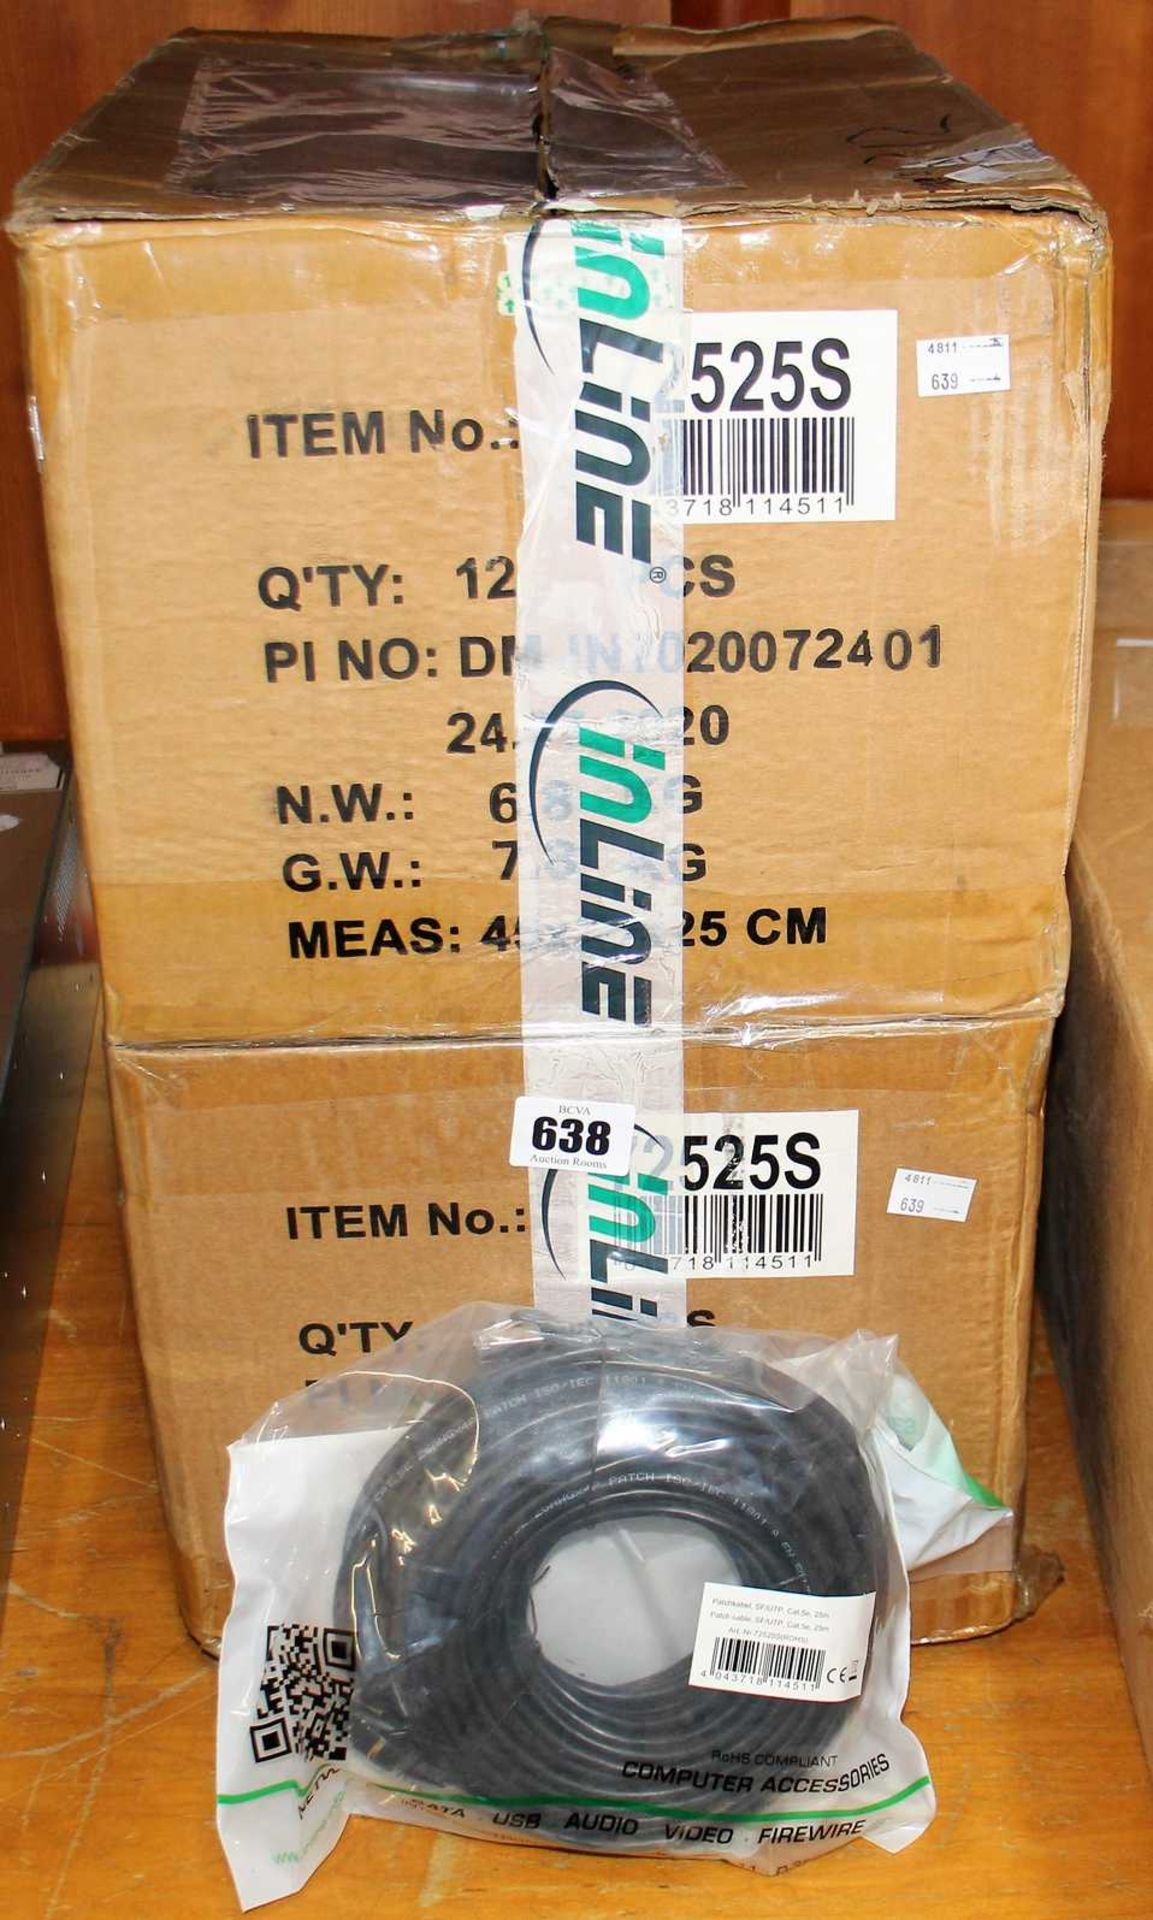 Twenty four as new InLine SF/UTP Cat.5e 25m Patch Cables in Black (ART NO: 72525S ROHS). - Image 2 of 2